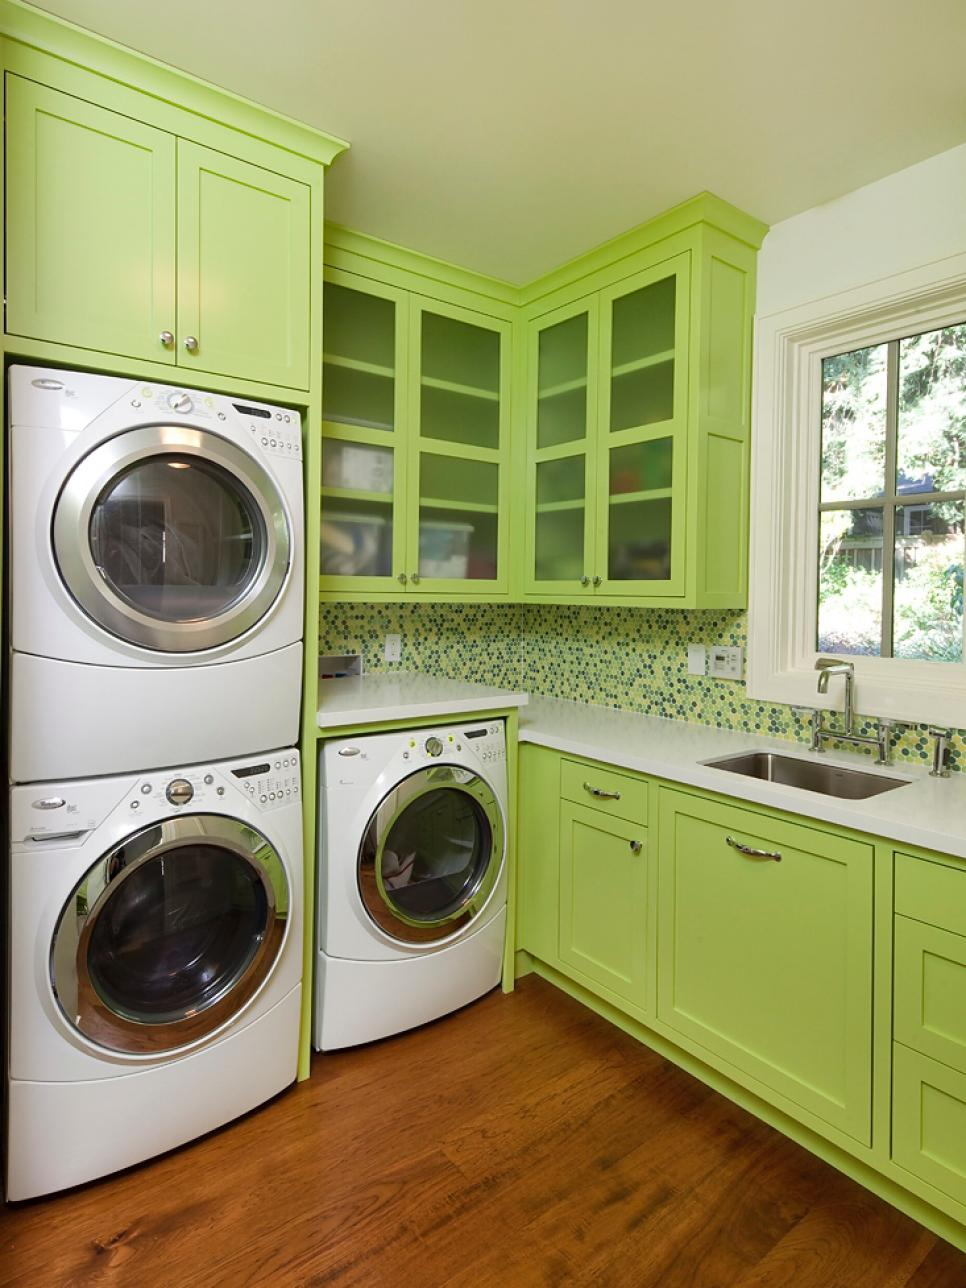 19 fabulous ideas how to add color to your laundry room on paint for laundry room floor ideas images id=95017